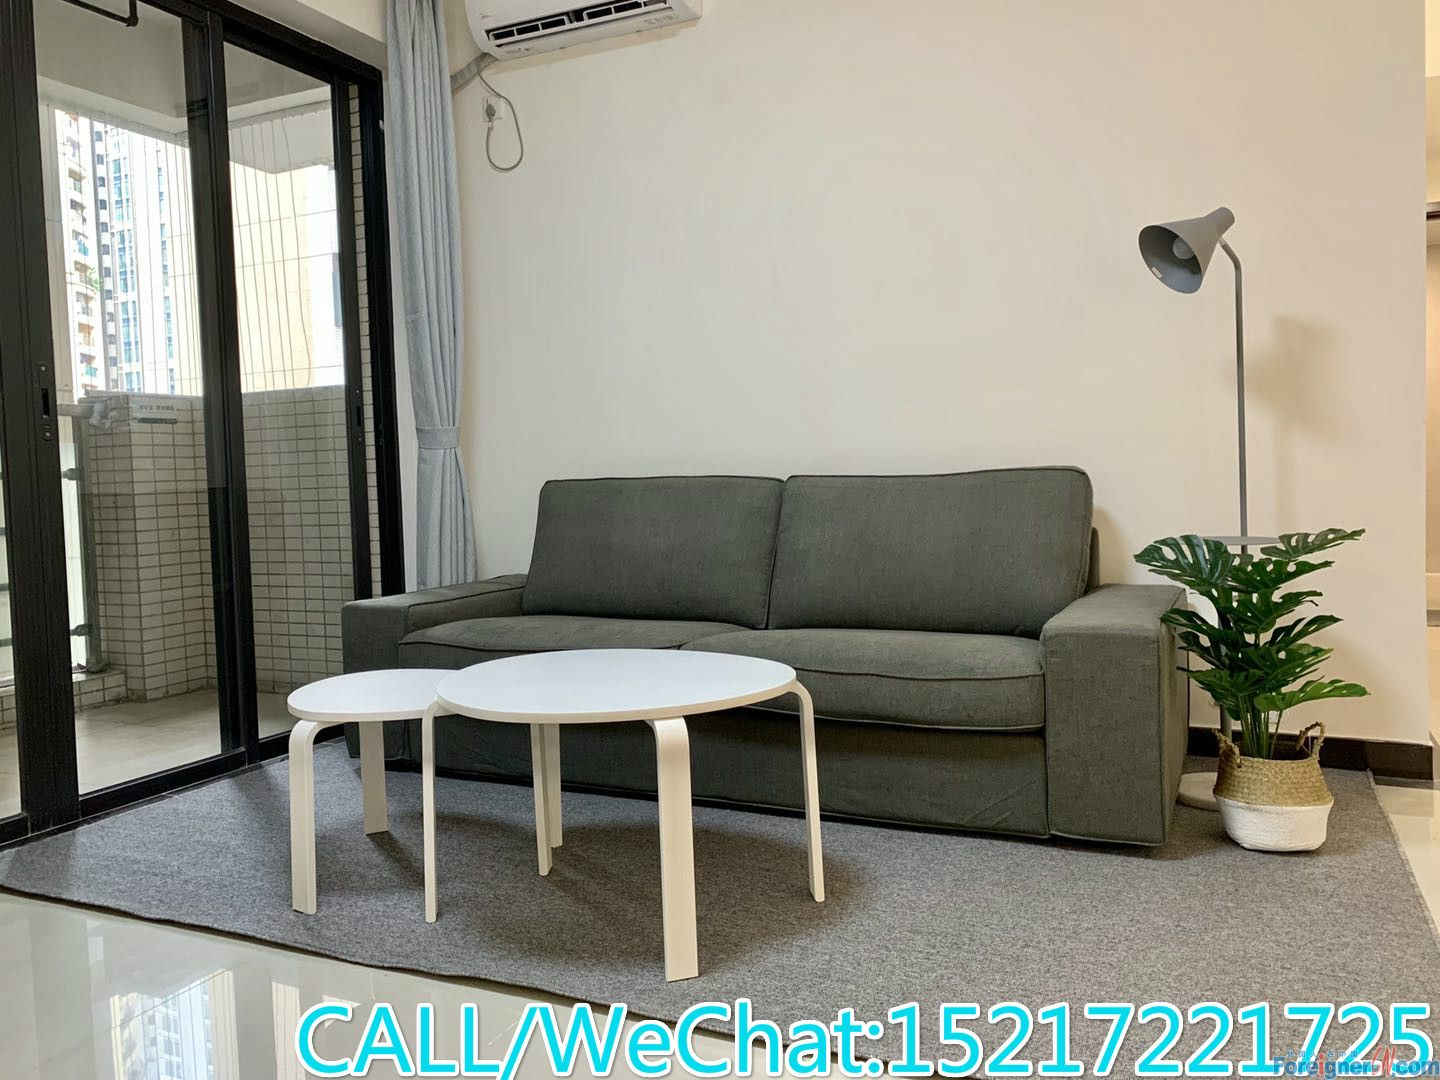 Morden 1br avaliable now,fully furnished,good layout,CBD AREA,convenient.